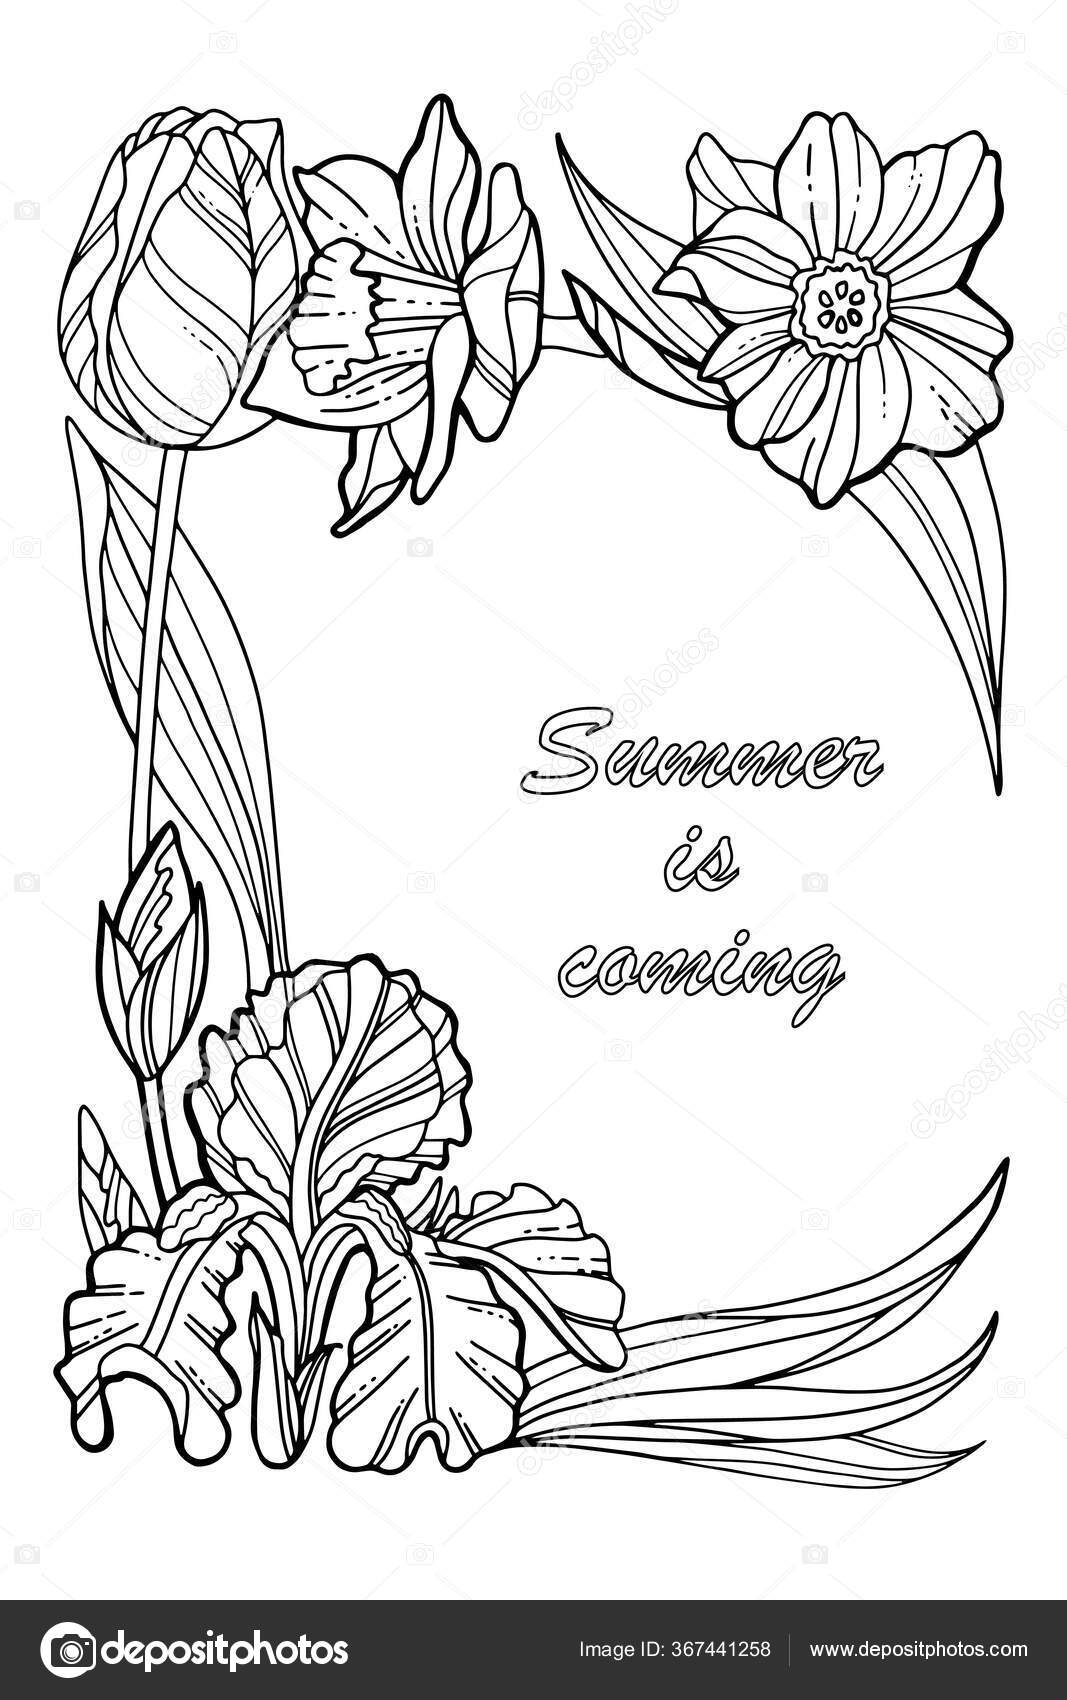 Summer Is Coming Coloring Book Page Decorative Wreath With Spring Flowers Stock Vector C 7slonov 367441258